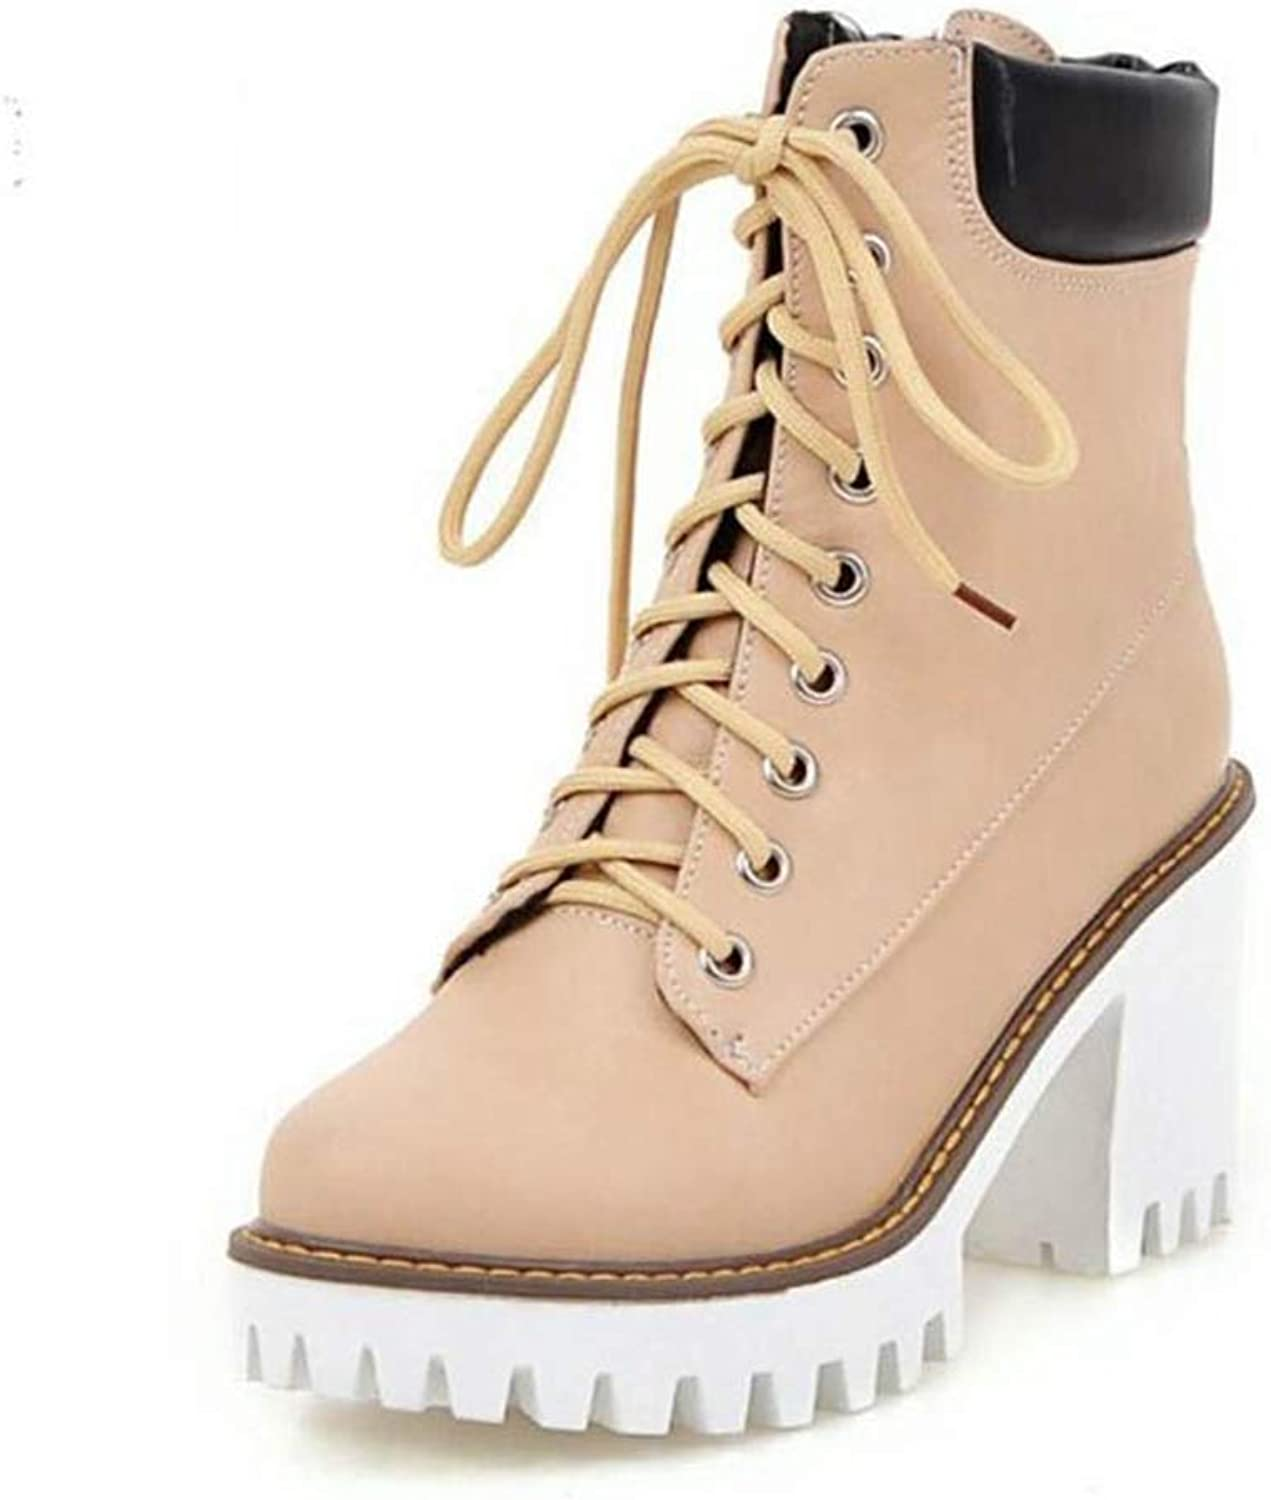 T-JULY Women's Thick Fur Boots Half Short High Heel Boots Lace Up Winter Boots Mid Calf Botas Footwears